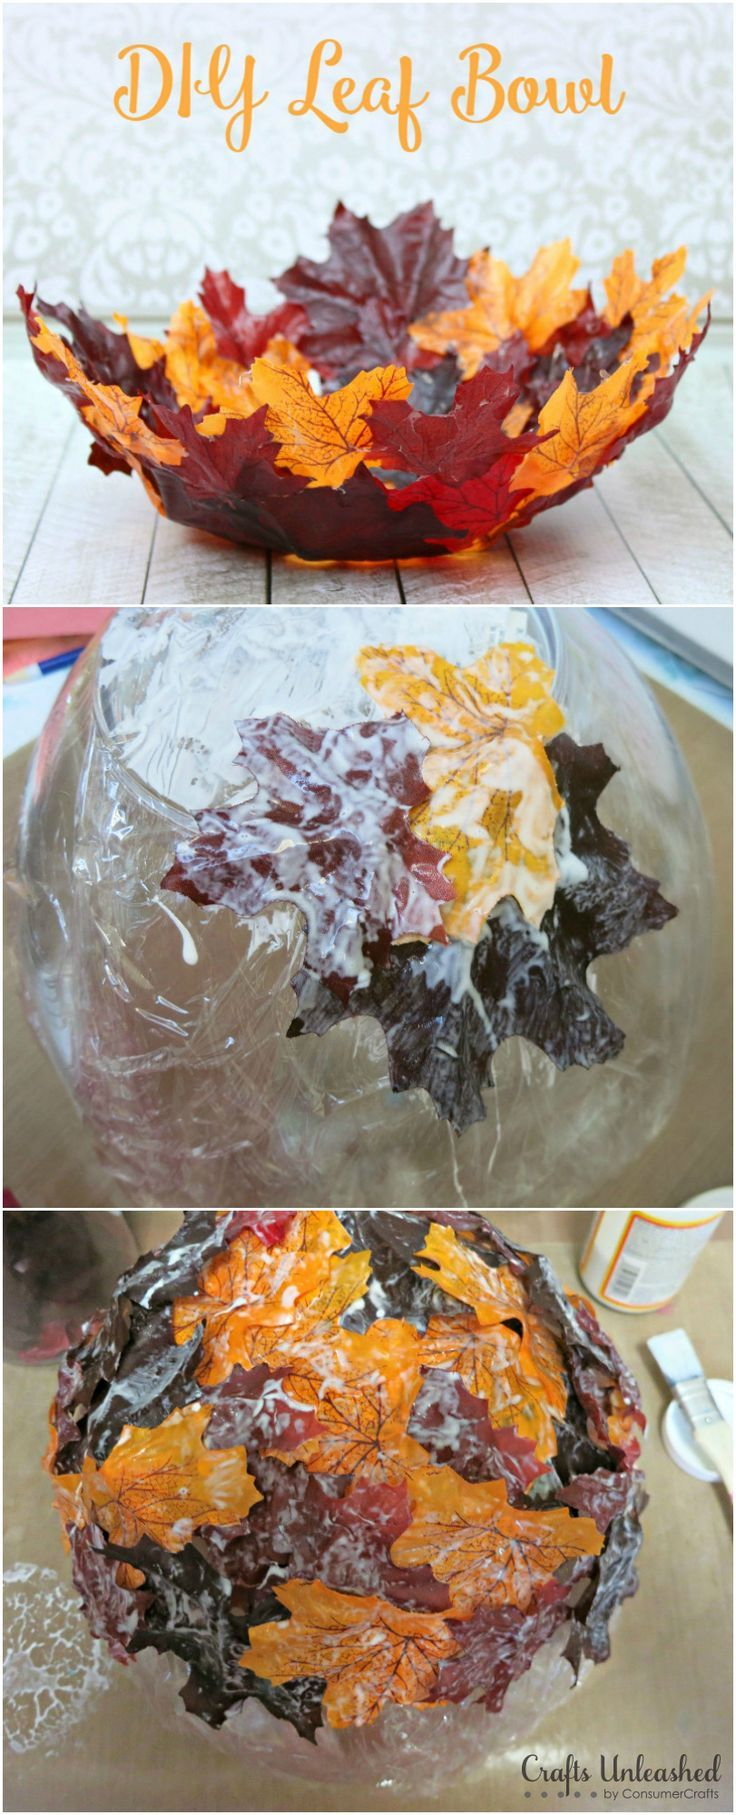 DIY Decorative Leaf Bowl for Fall                                                                                                                                                     More